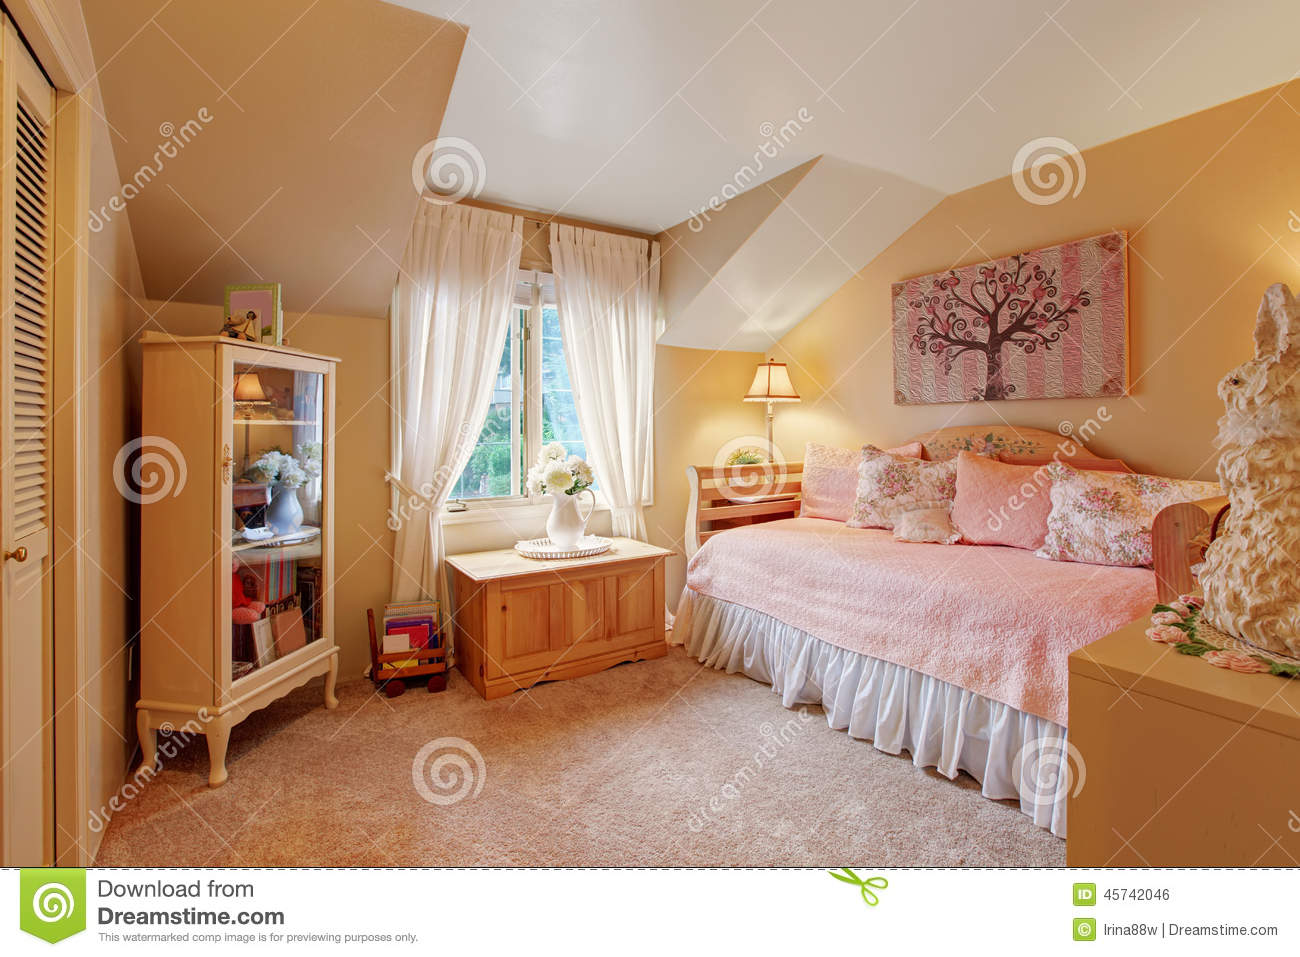 Romantic Girls Bedroom Interior In Soft Tones Stock Photo Image Of Pink Bedding 45742046